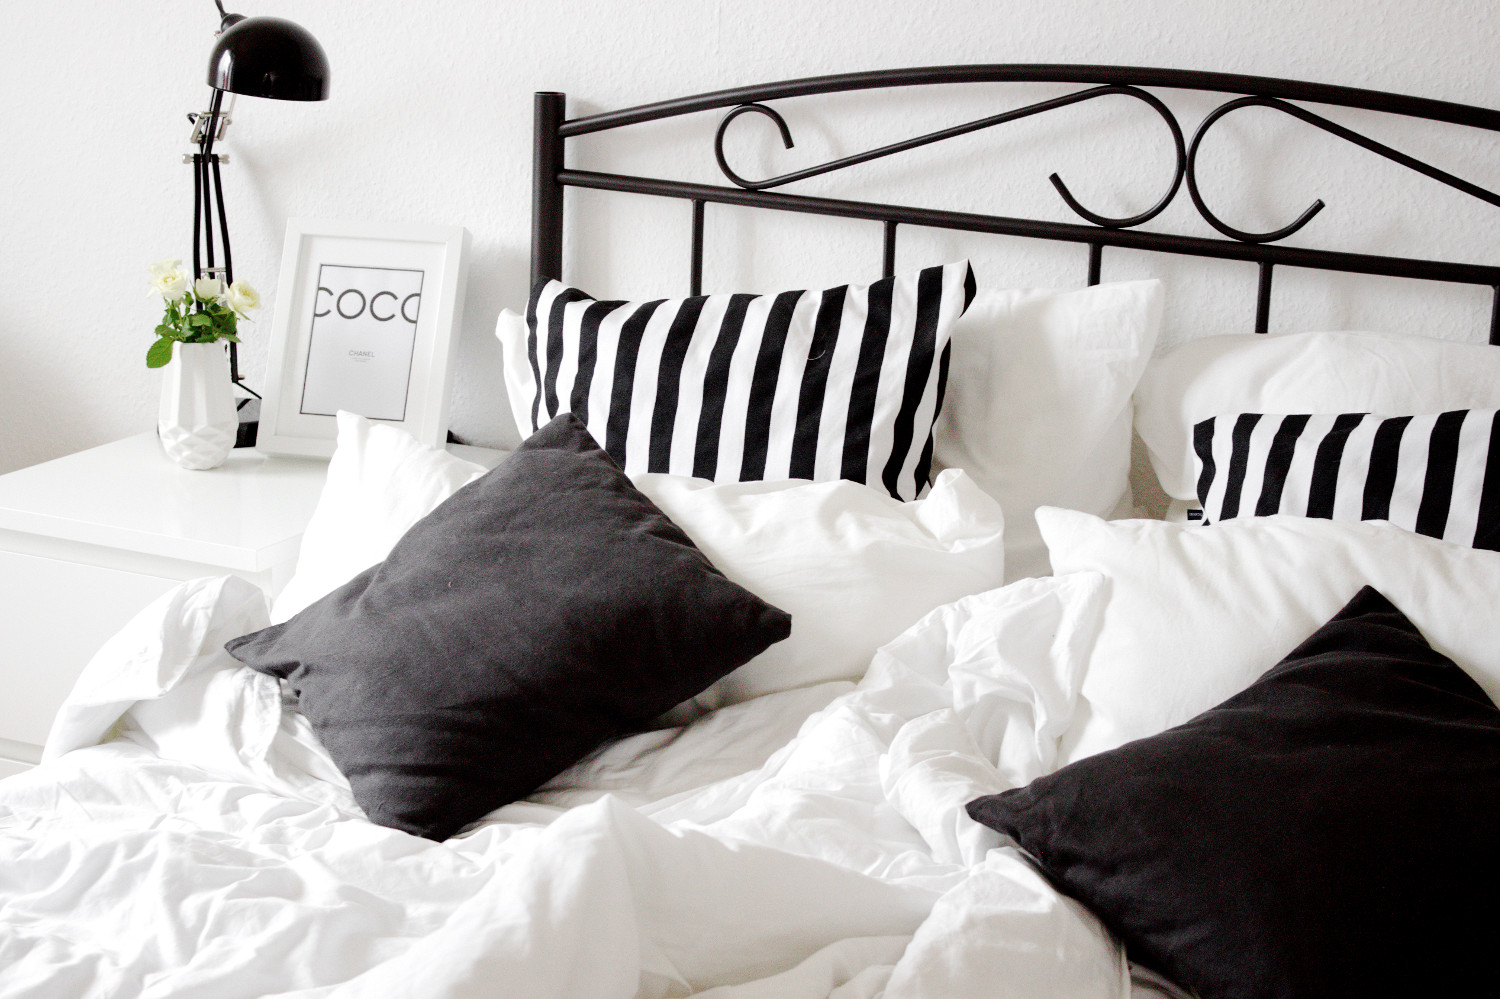 vergleich boxspringbett oder normales bett bezaubernde. Black Bedroom Furniture Sets. Home Design Ideas